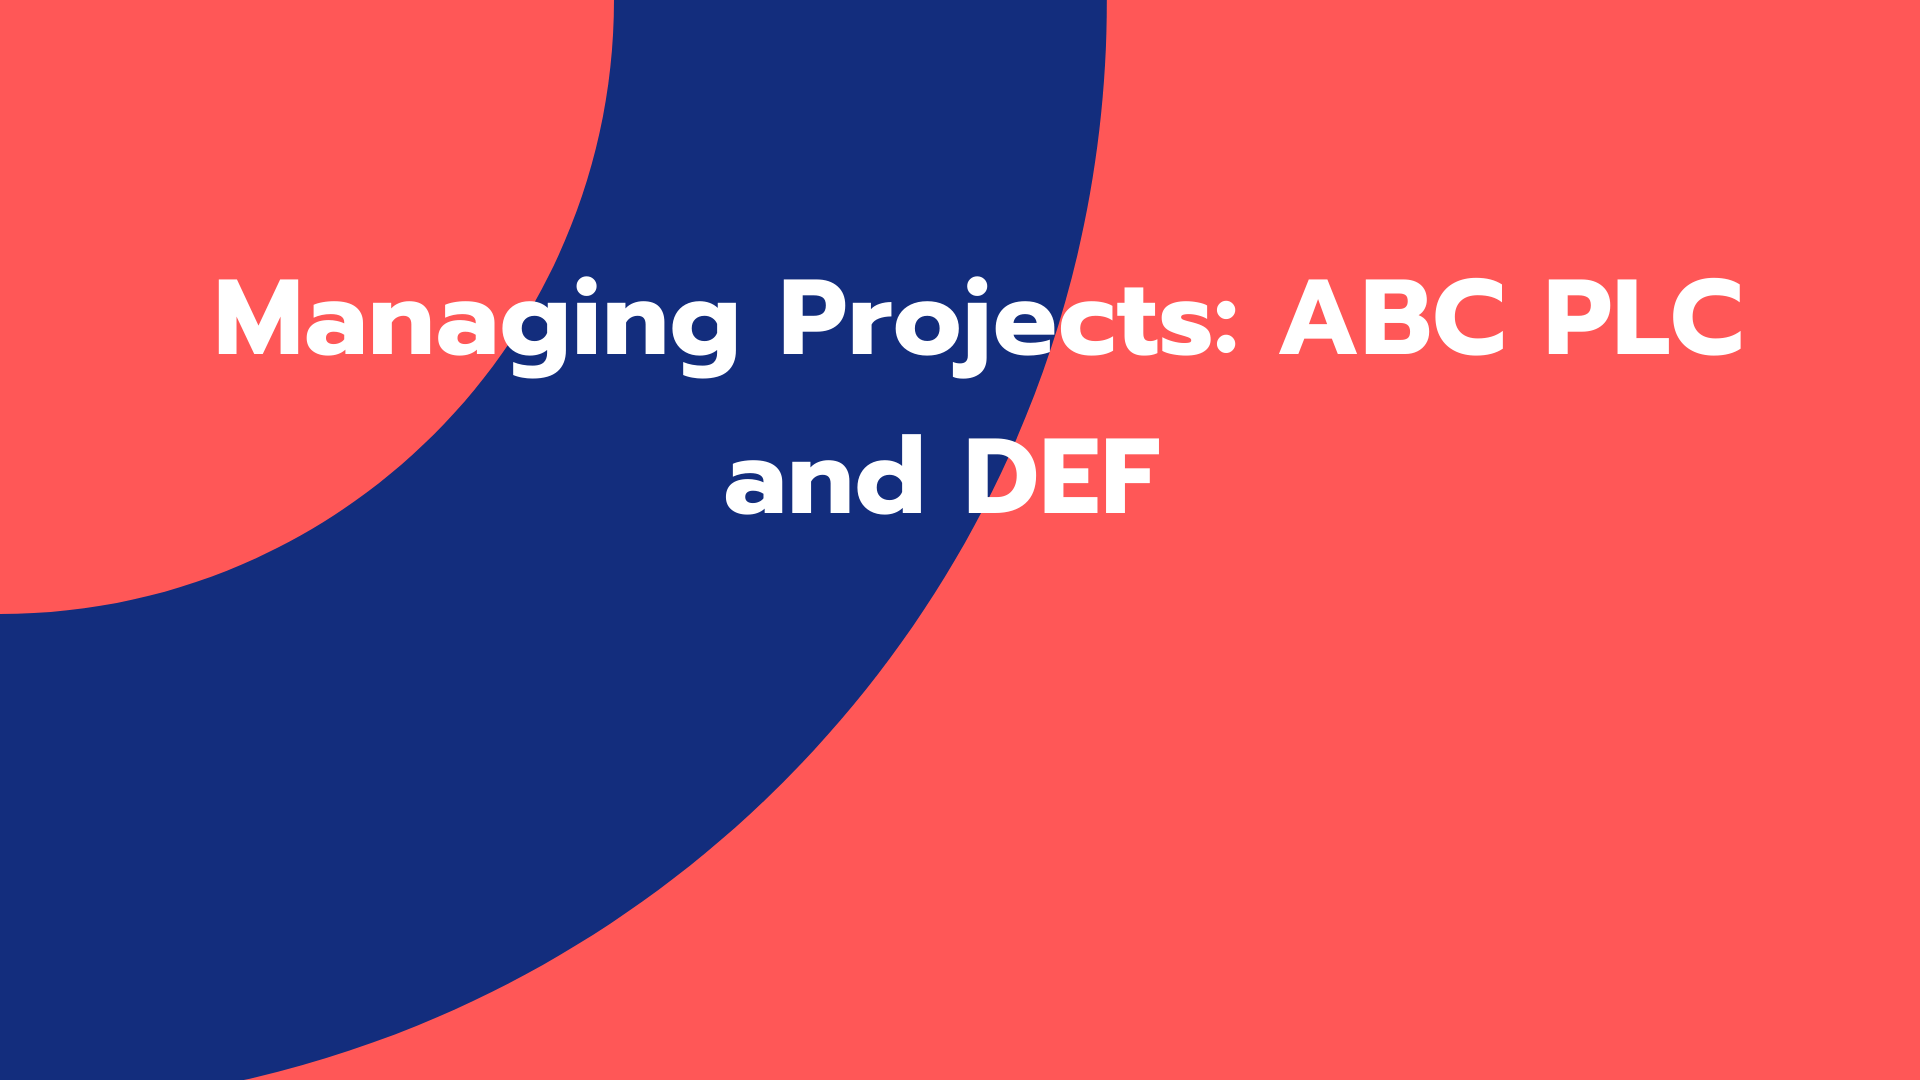 Managing Projects: ABC PLC and DEF